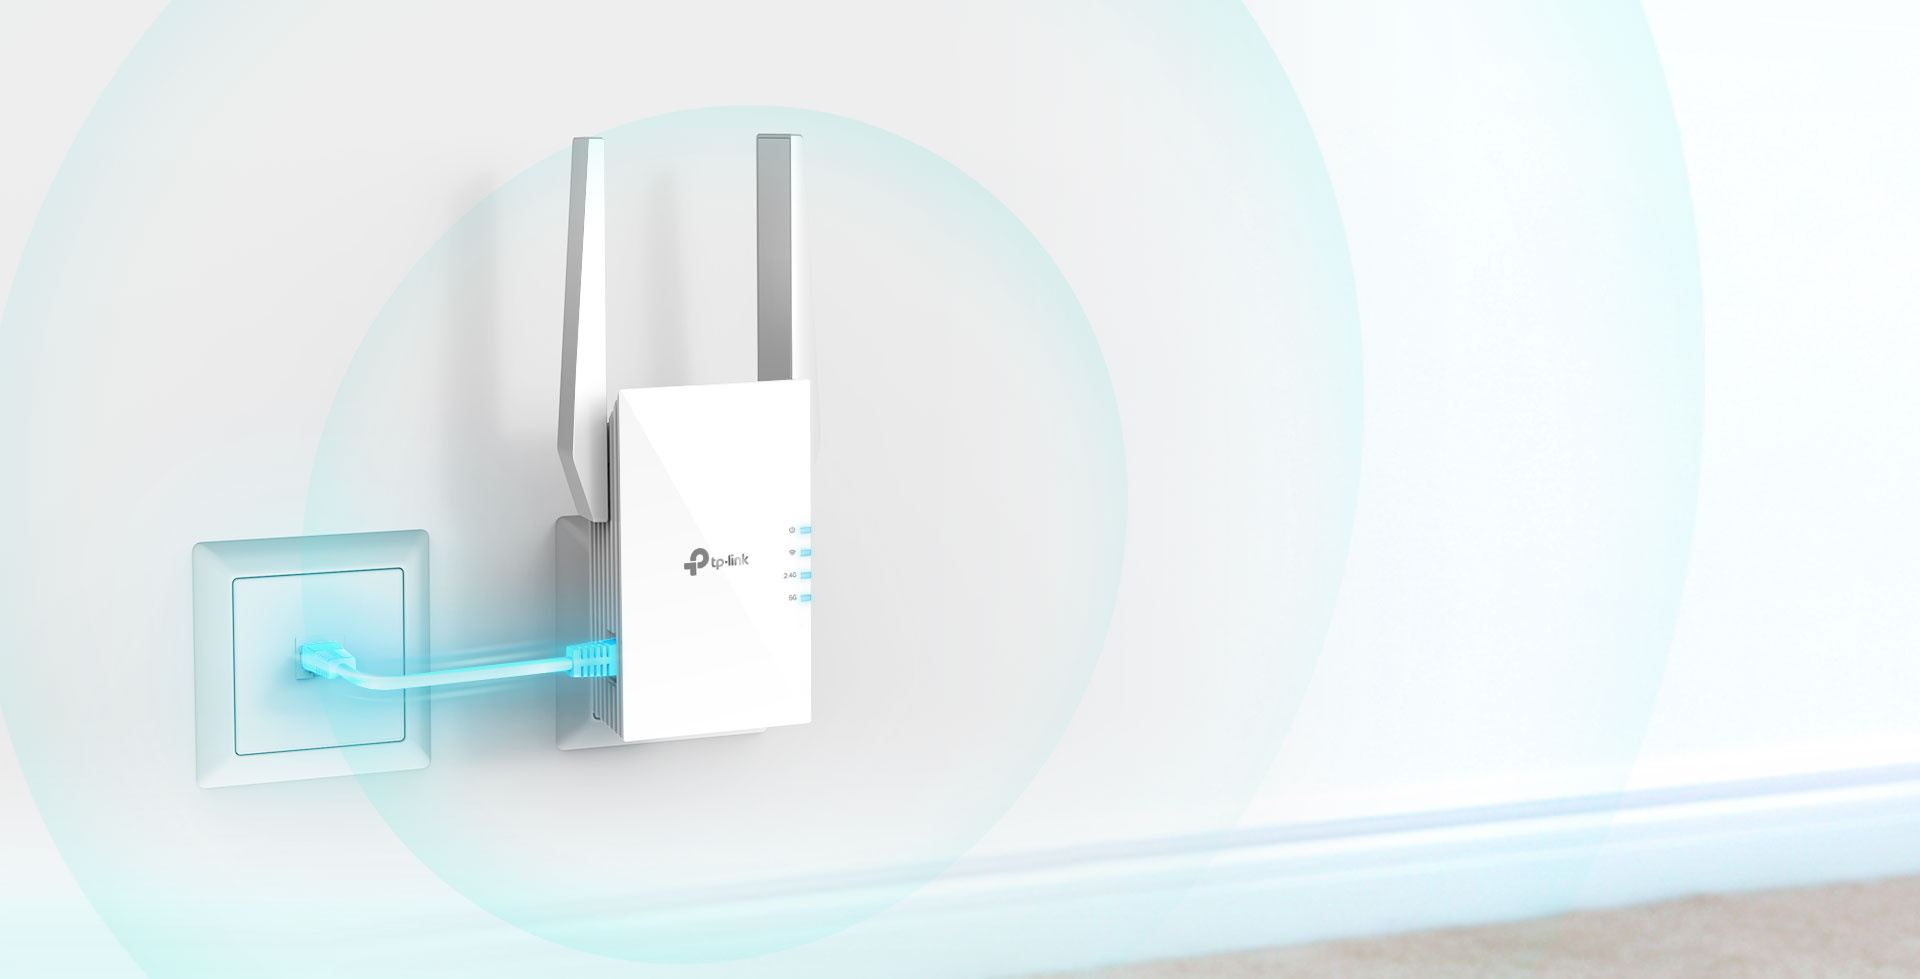 #Repeater TP-LINK RE605X